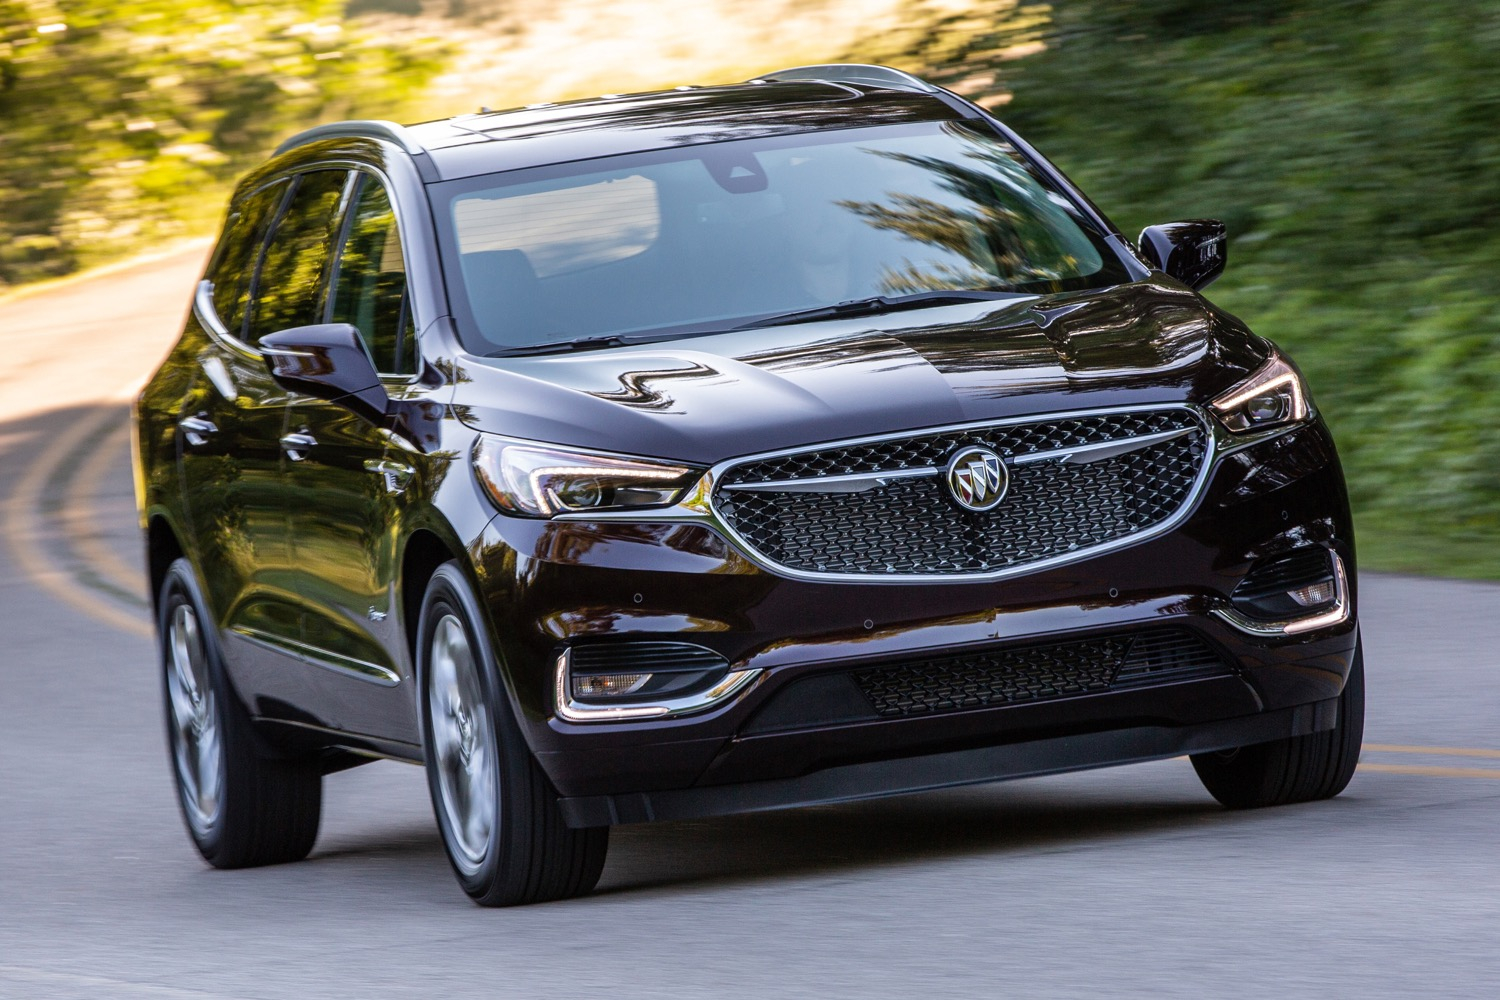 Buick Enclave Discount Totals $4,750 In February 2020 | Gm New 2022 Buick Enclave Avenir Awd Review, Accessories, Build